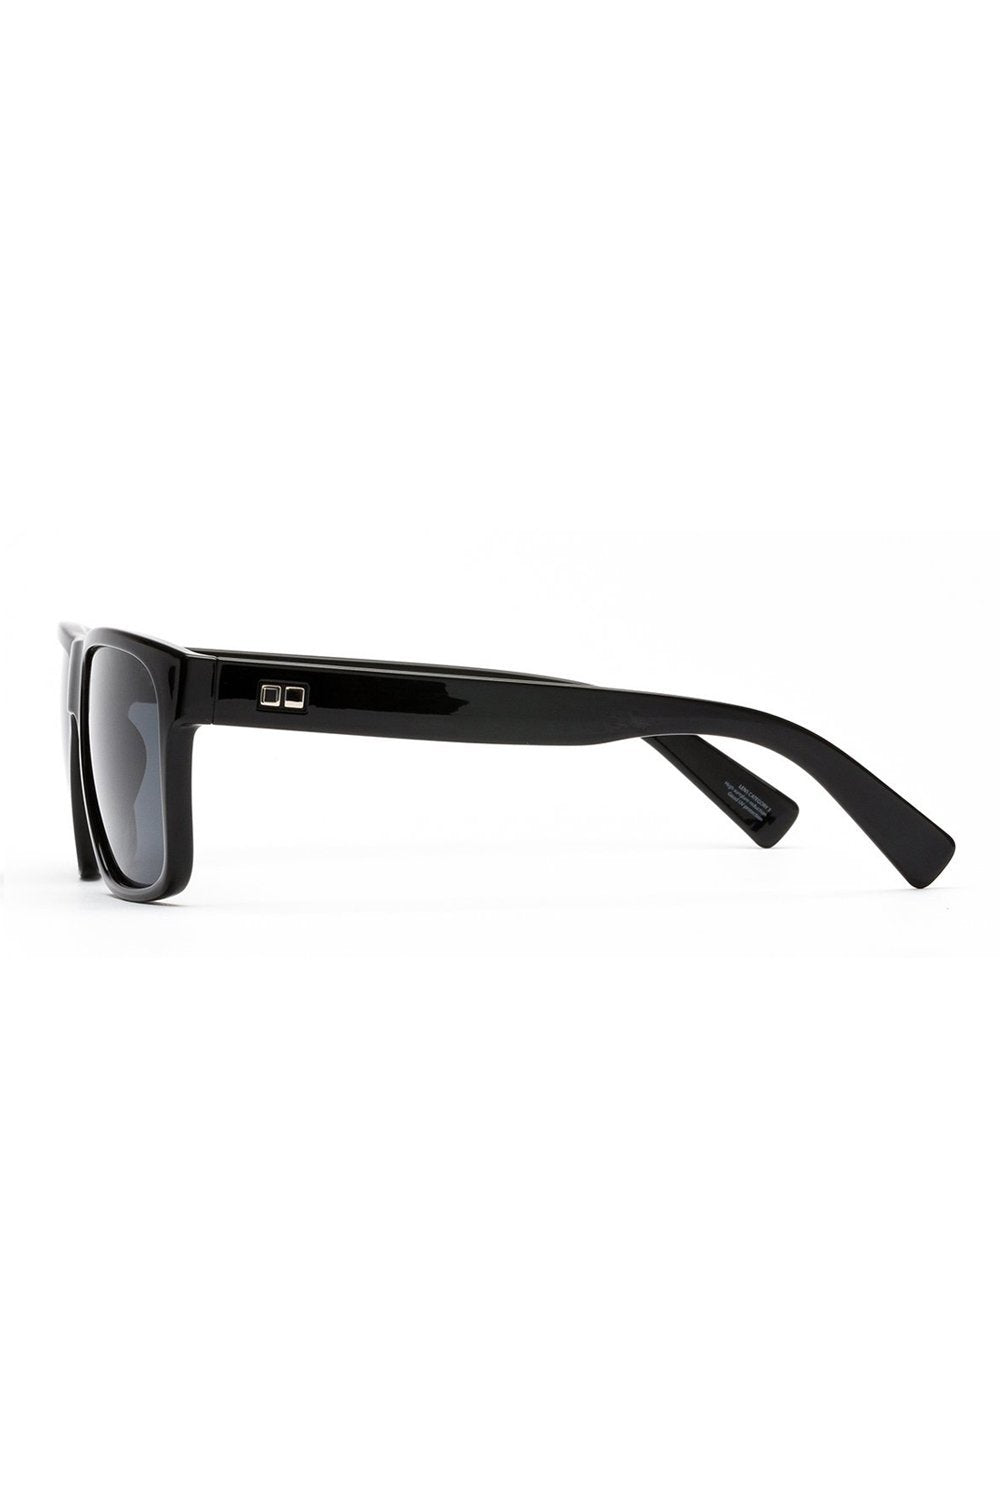 120843f02b Buy Otis - Life On Mars Sunglasses